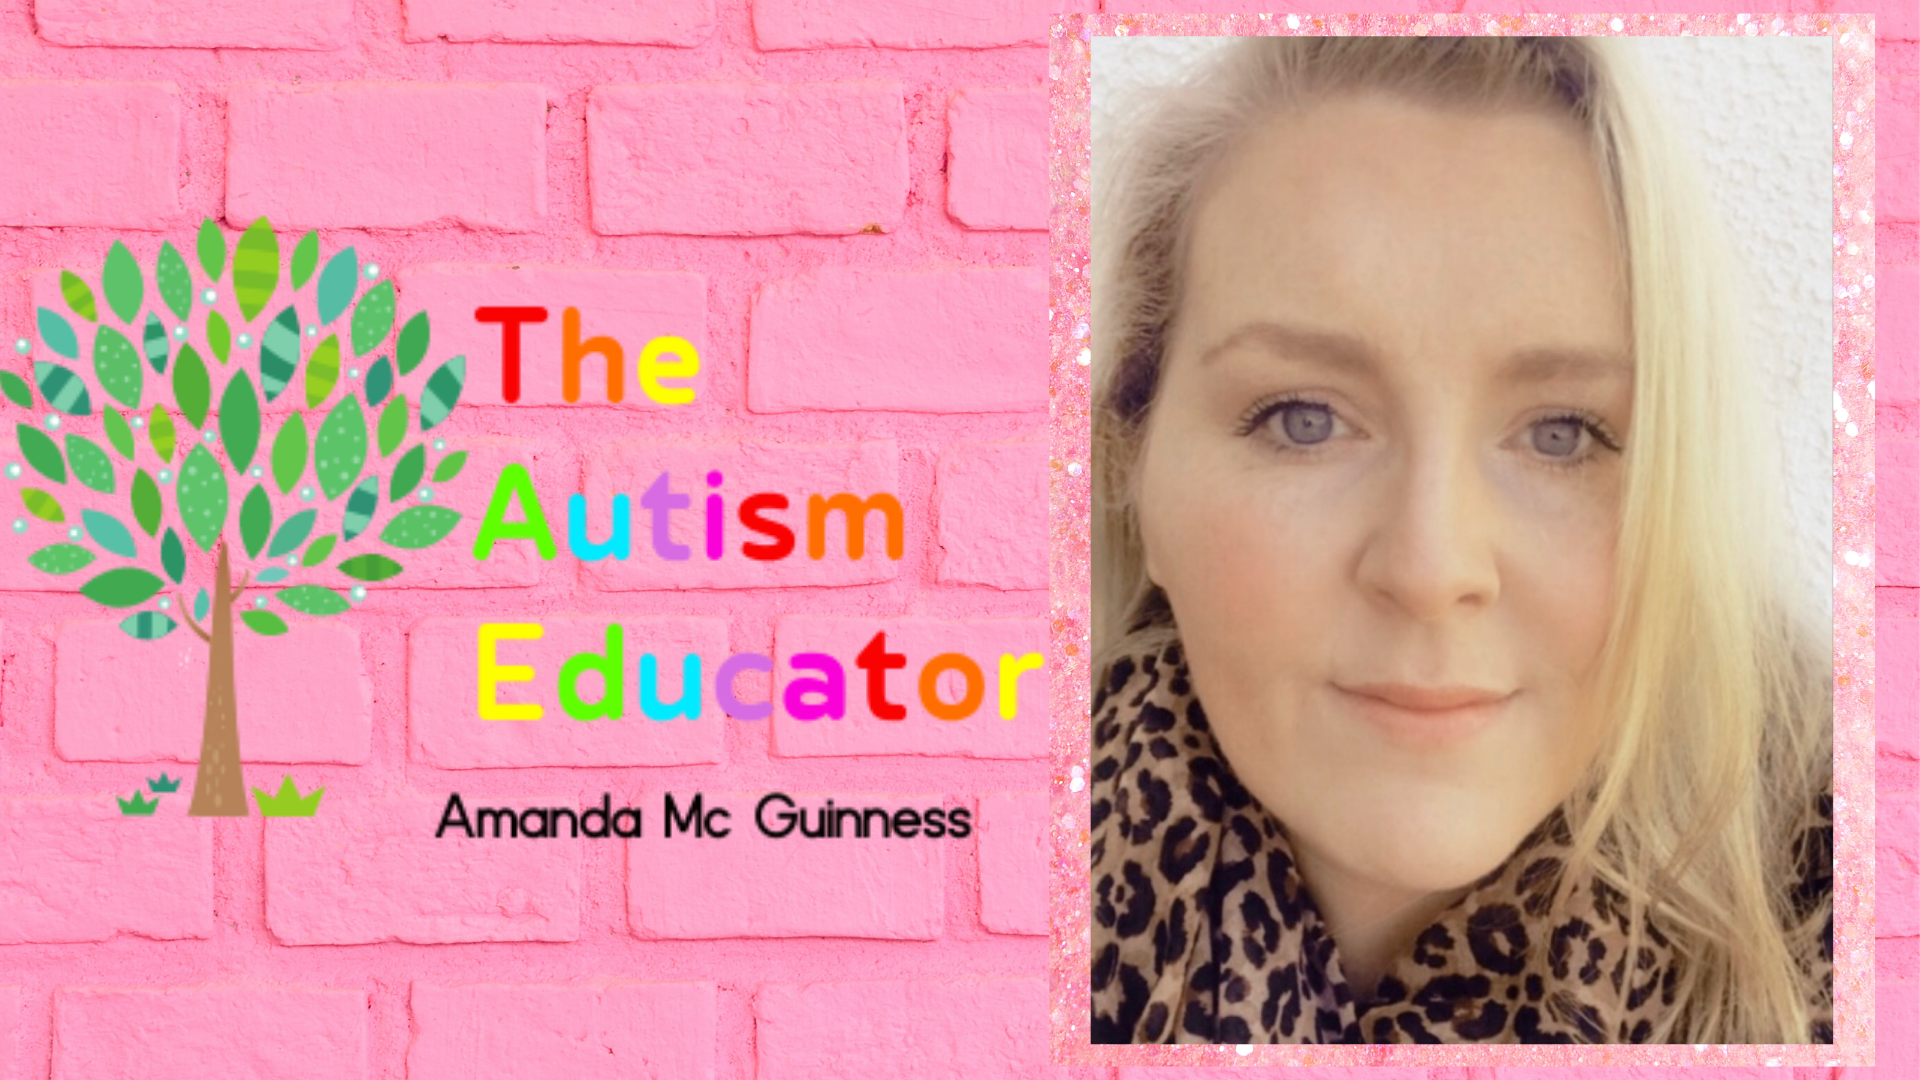 The Autism Educator